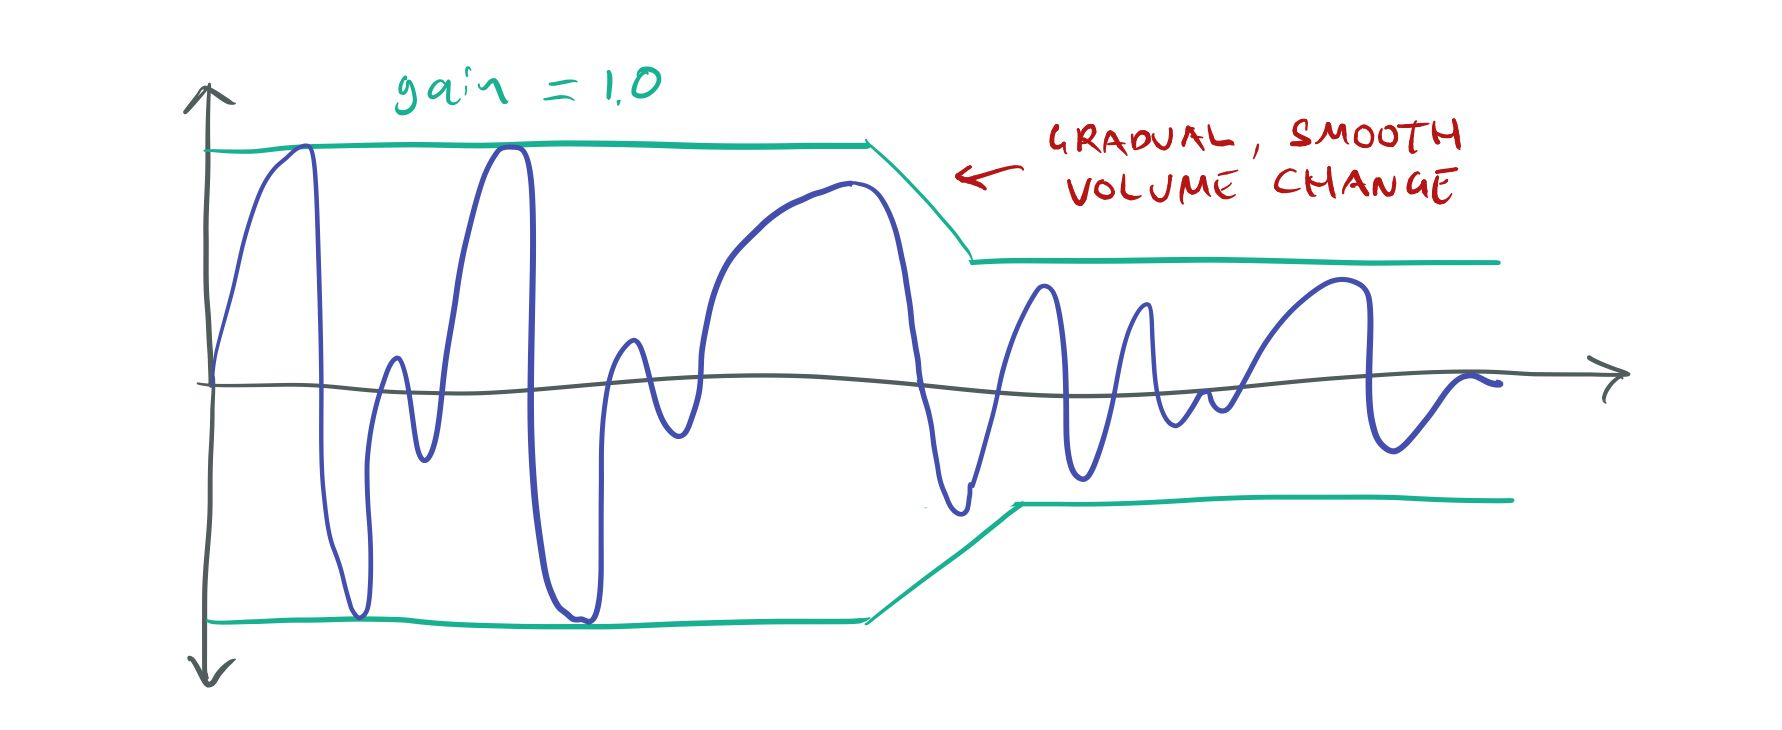 If we change the volume gradually, continuity is preserved.